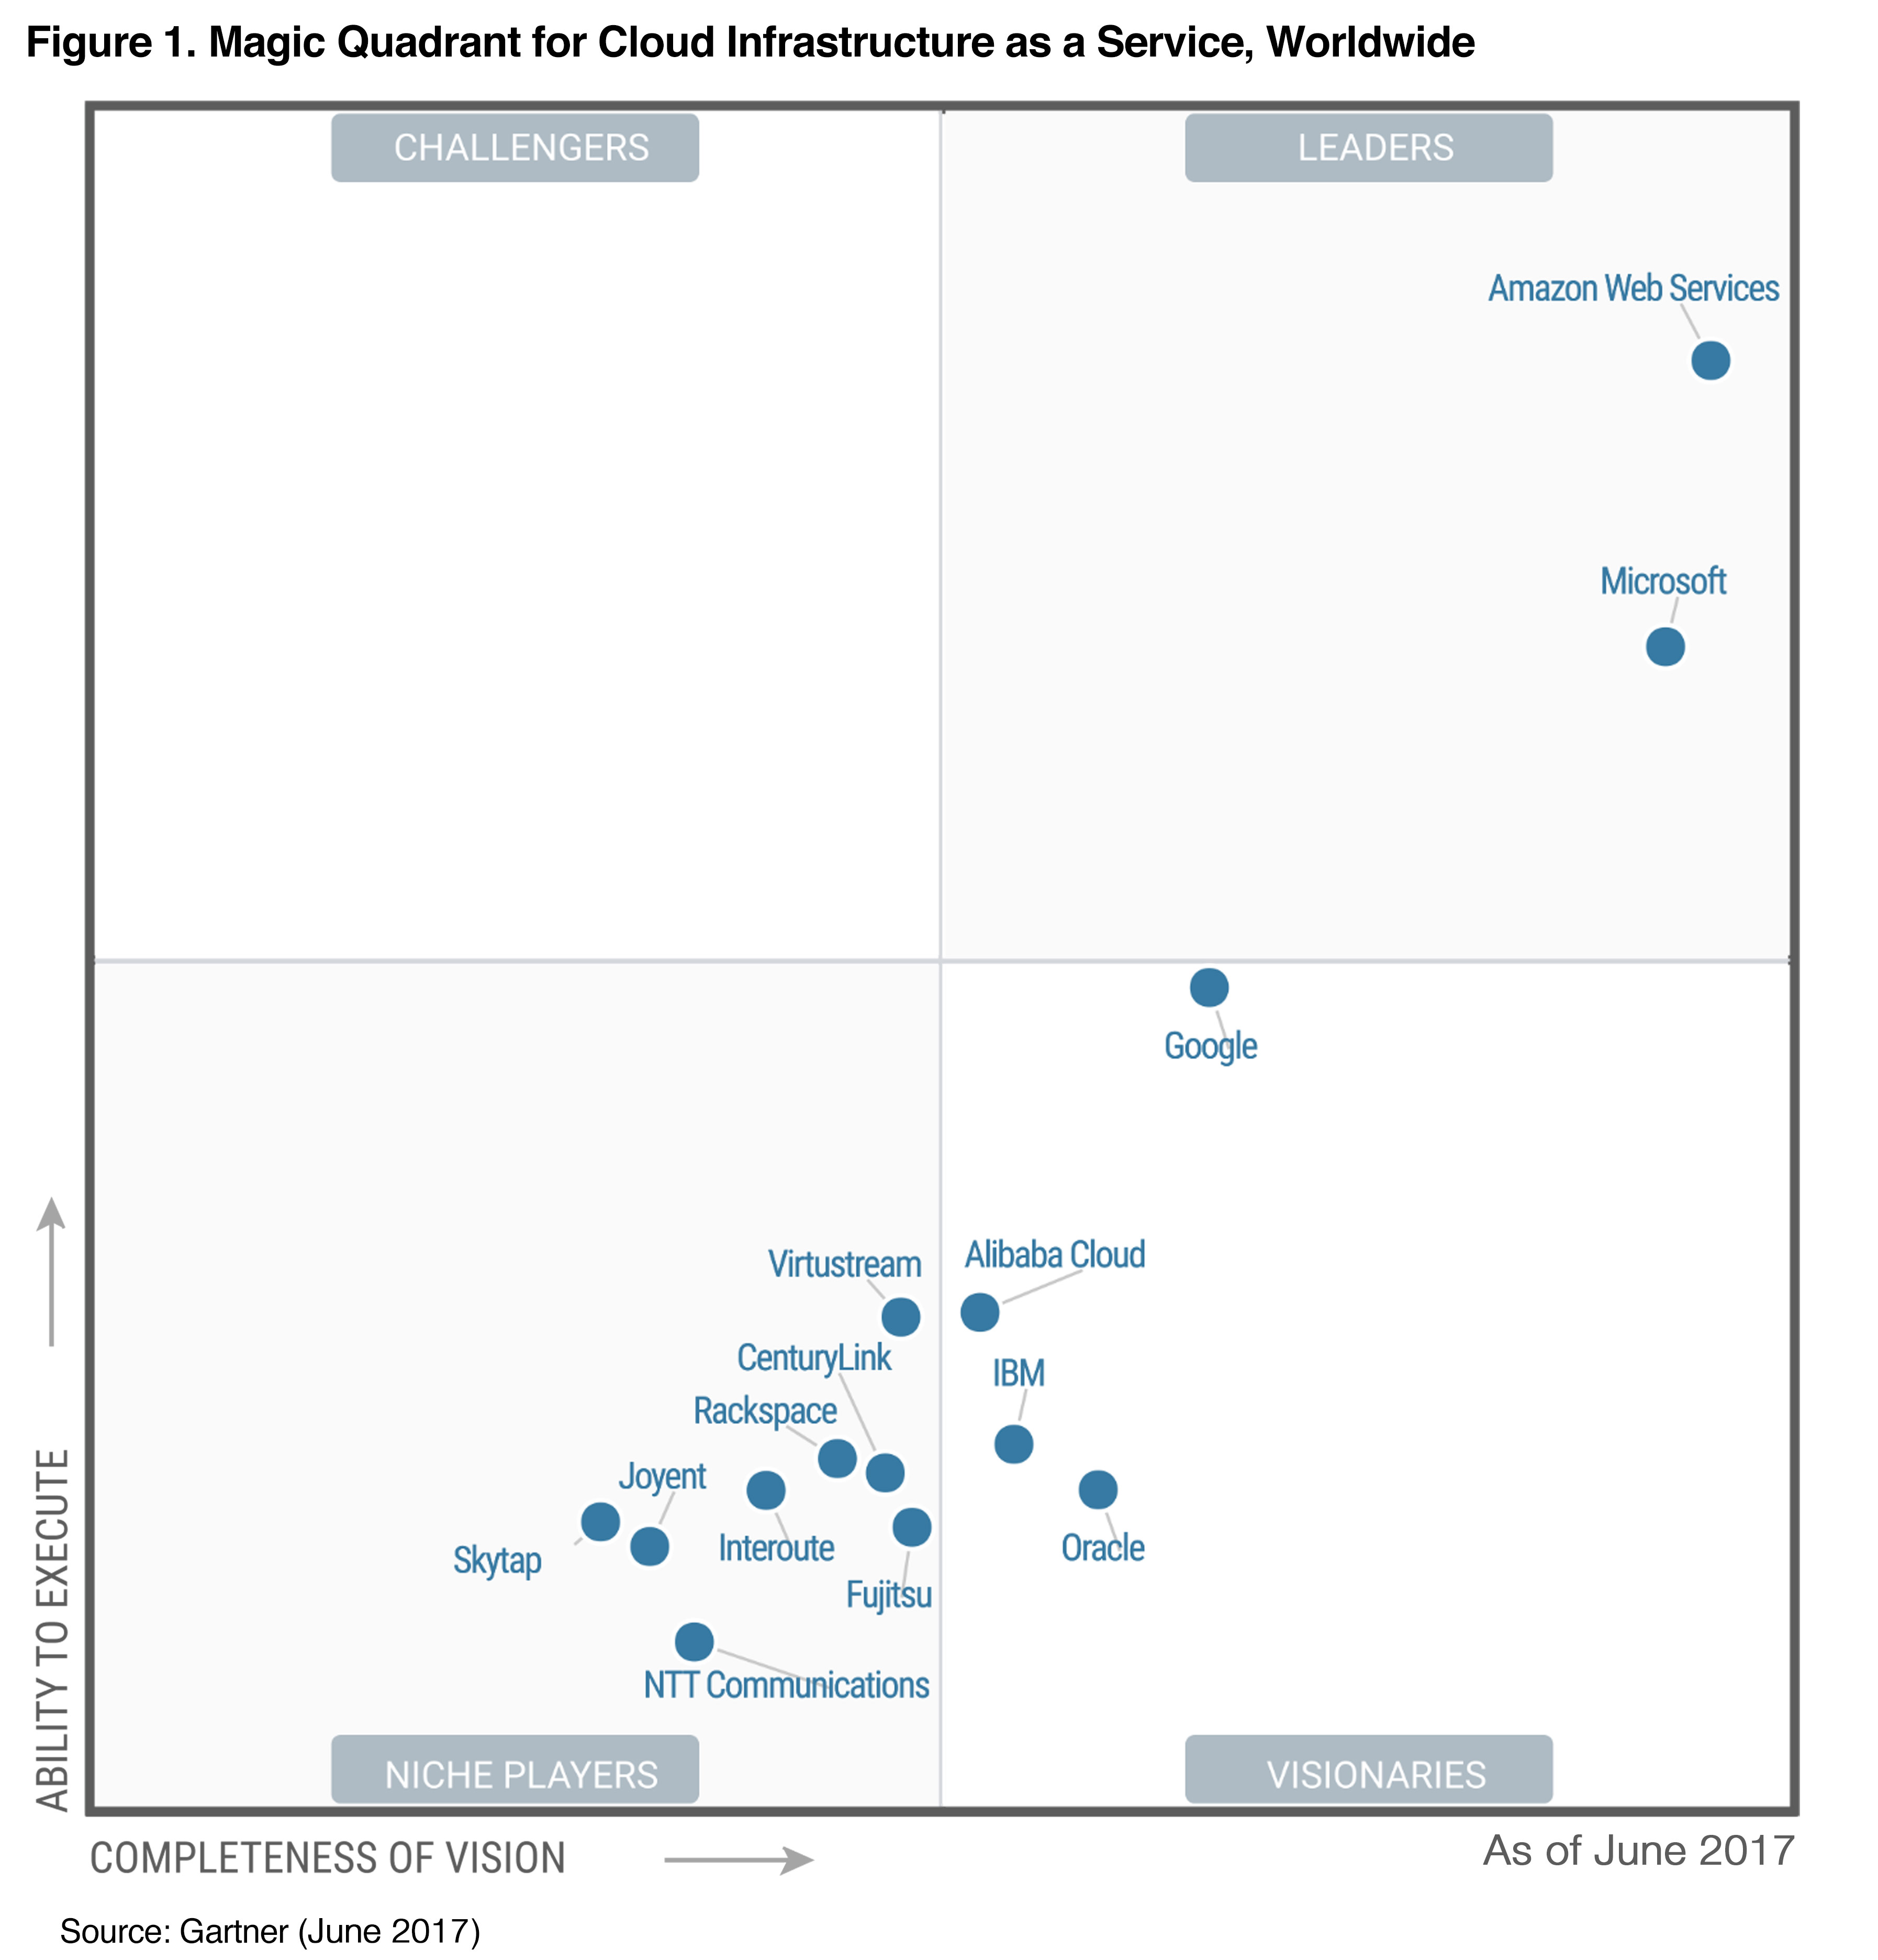 Gartner: Magic Quadrant for Cloud Infrastructure as a Service